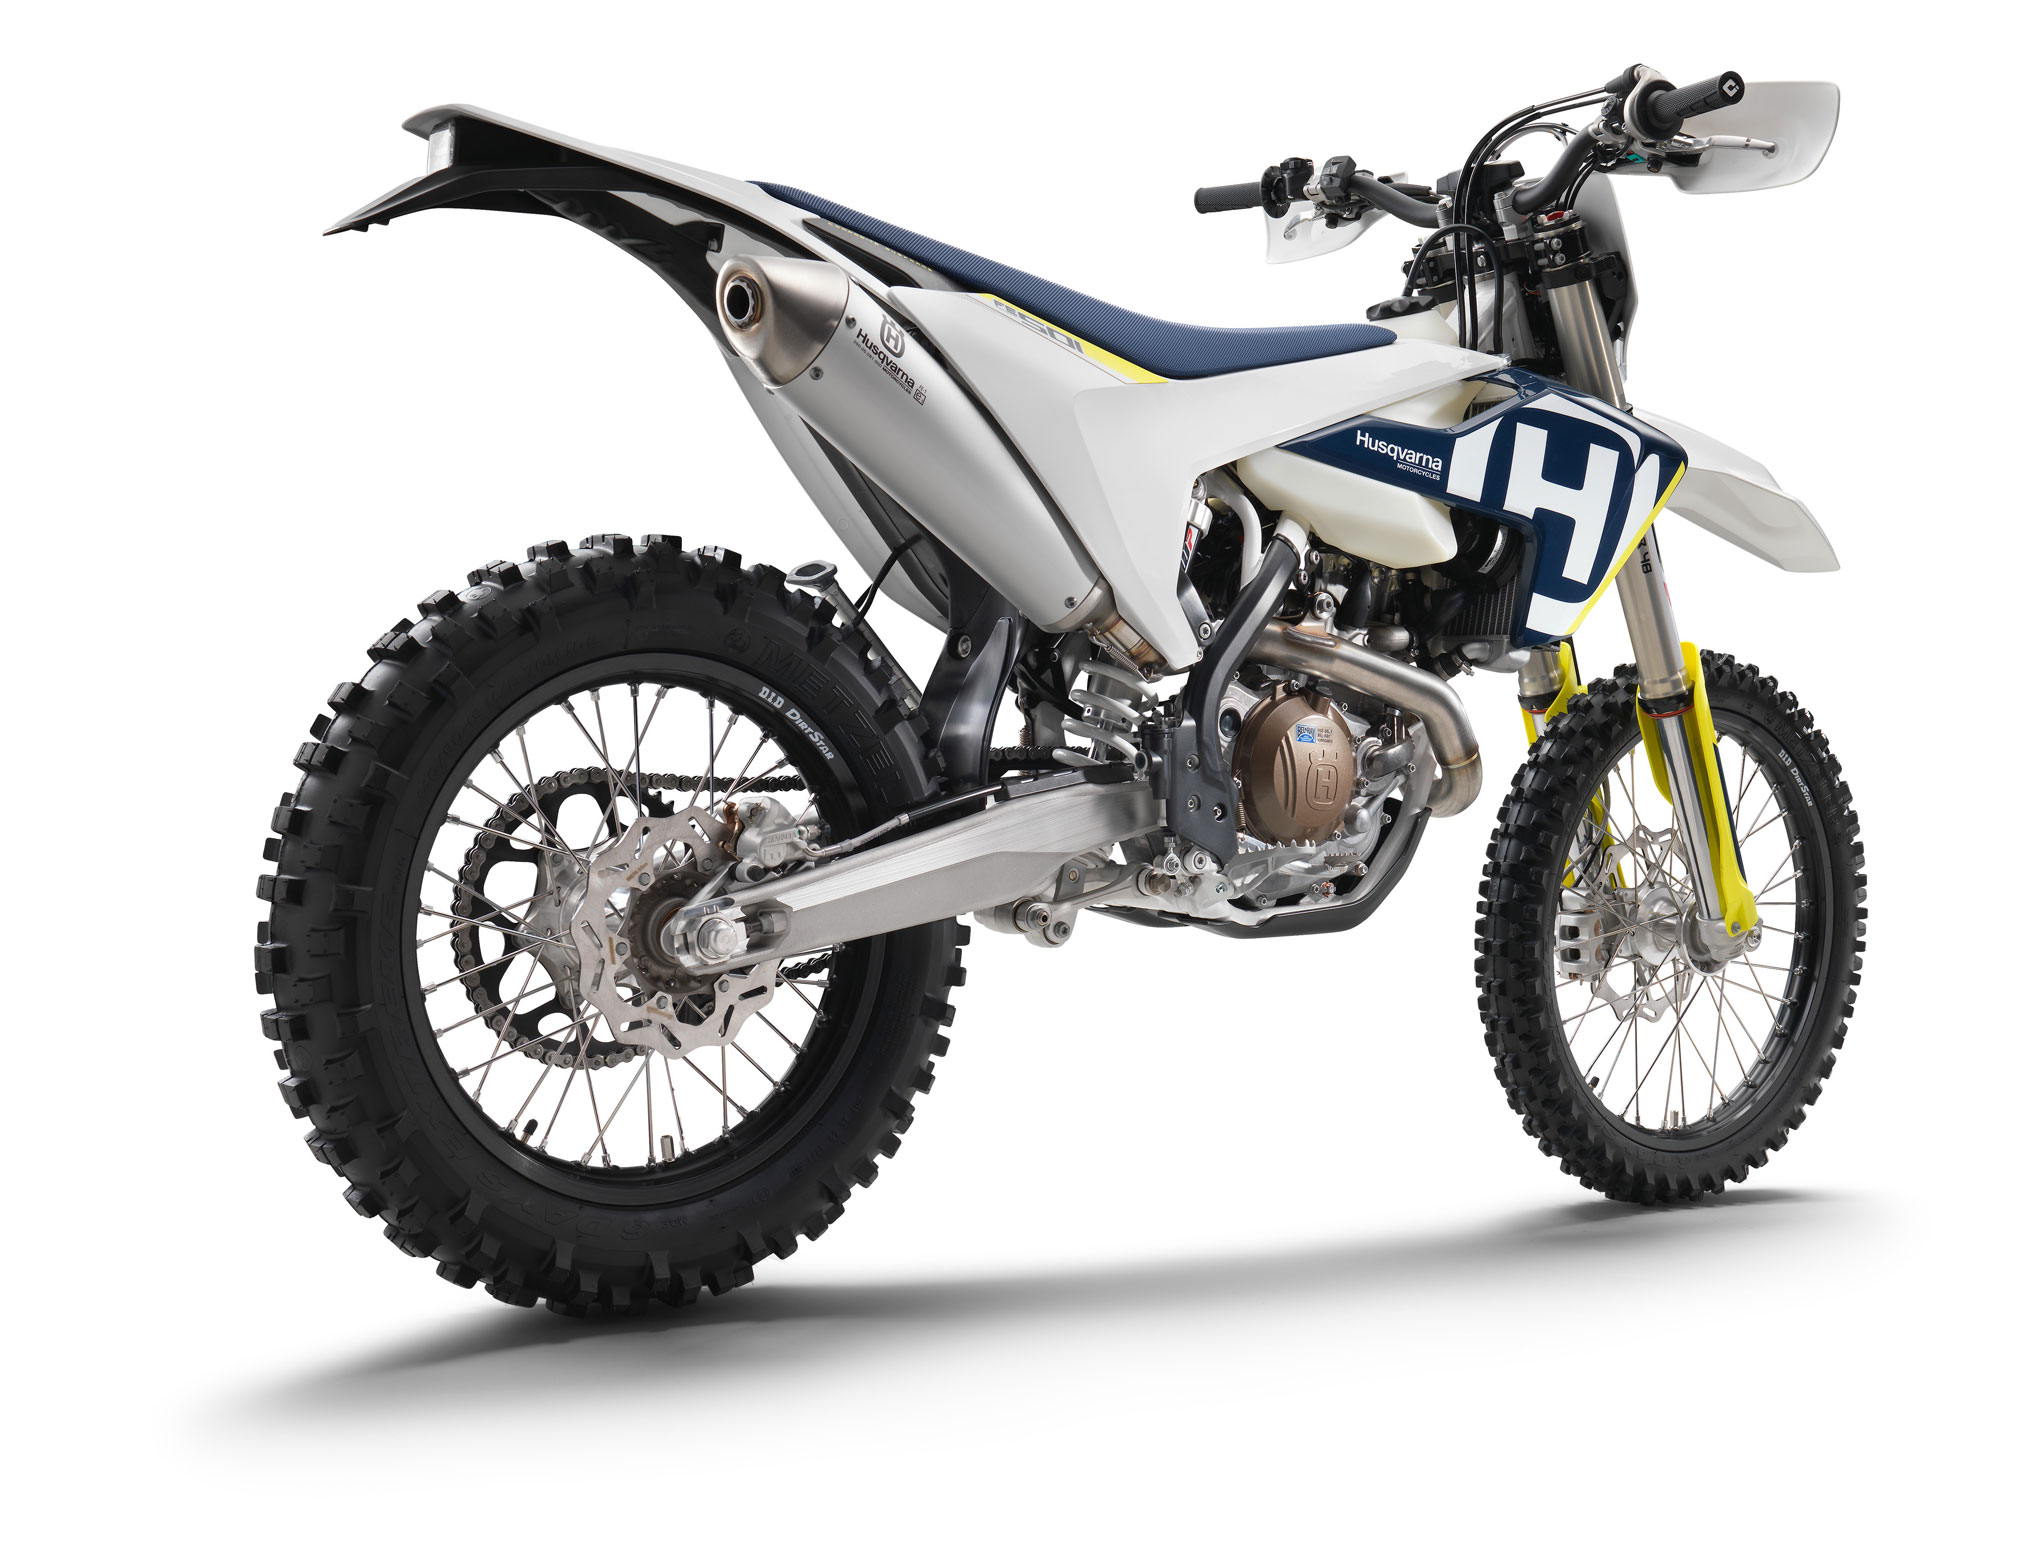 161024424221 moreover 2018 Husqvarna Fe501 Review further P 0900c152800a7b16 besides 150520842 Piaggio Vespa Lx50 Lx 4t Service Repair together with Understanding Engine Harmonics And Vibrations With Fluid r. on engine balancer